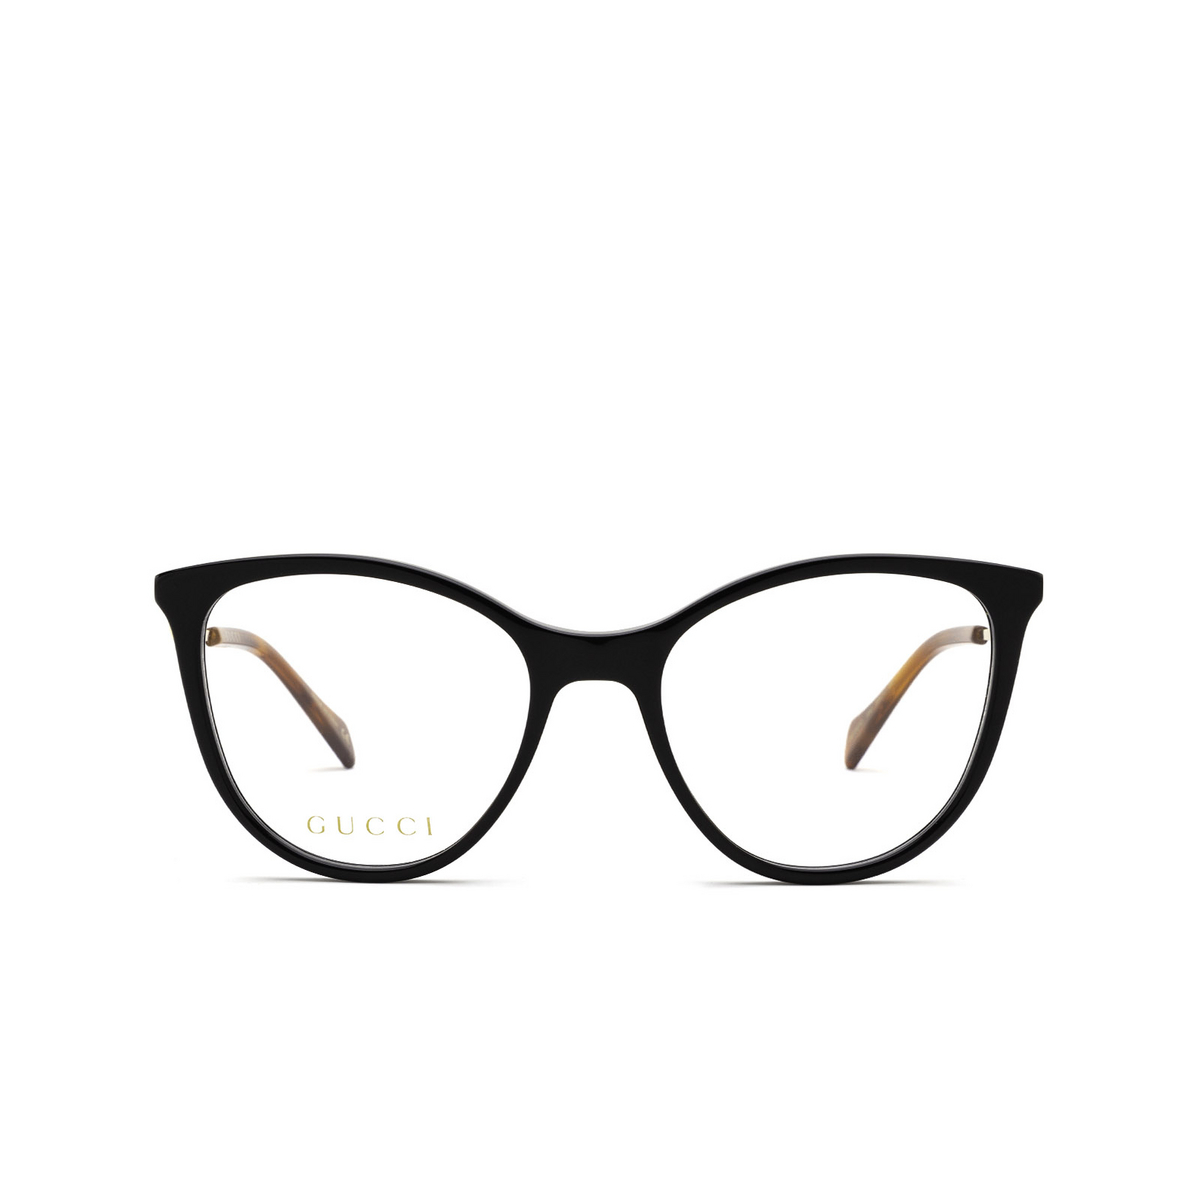 Gucci® Cat-eye Eyeglasses: GG1007O color Black 005 - front view.